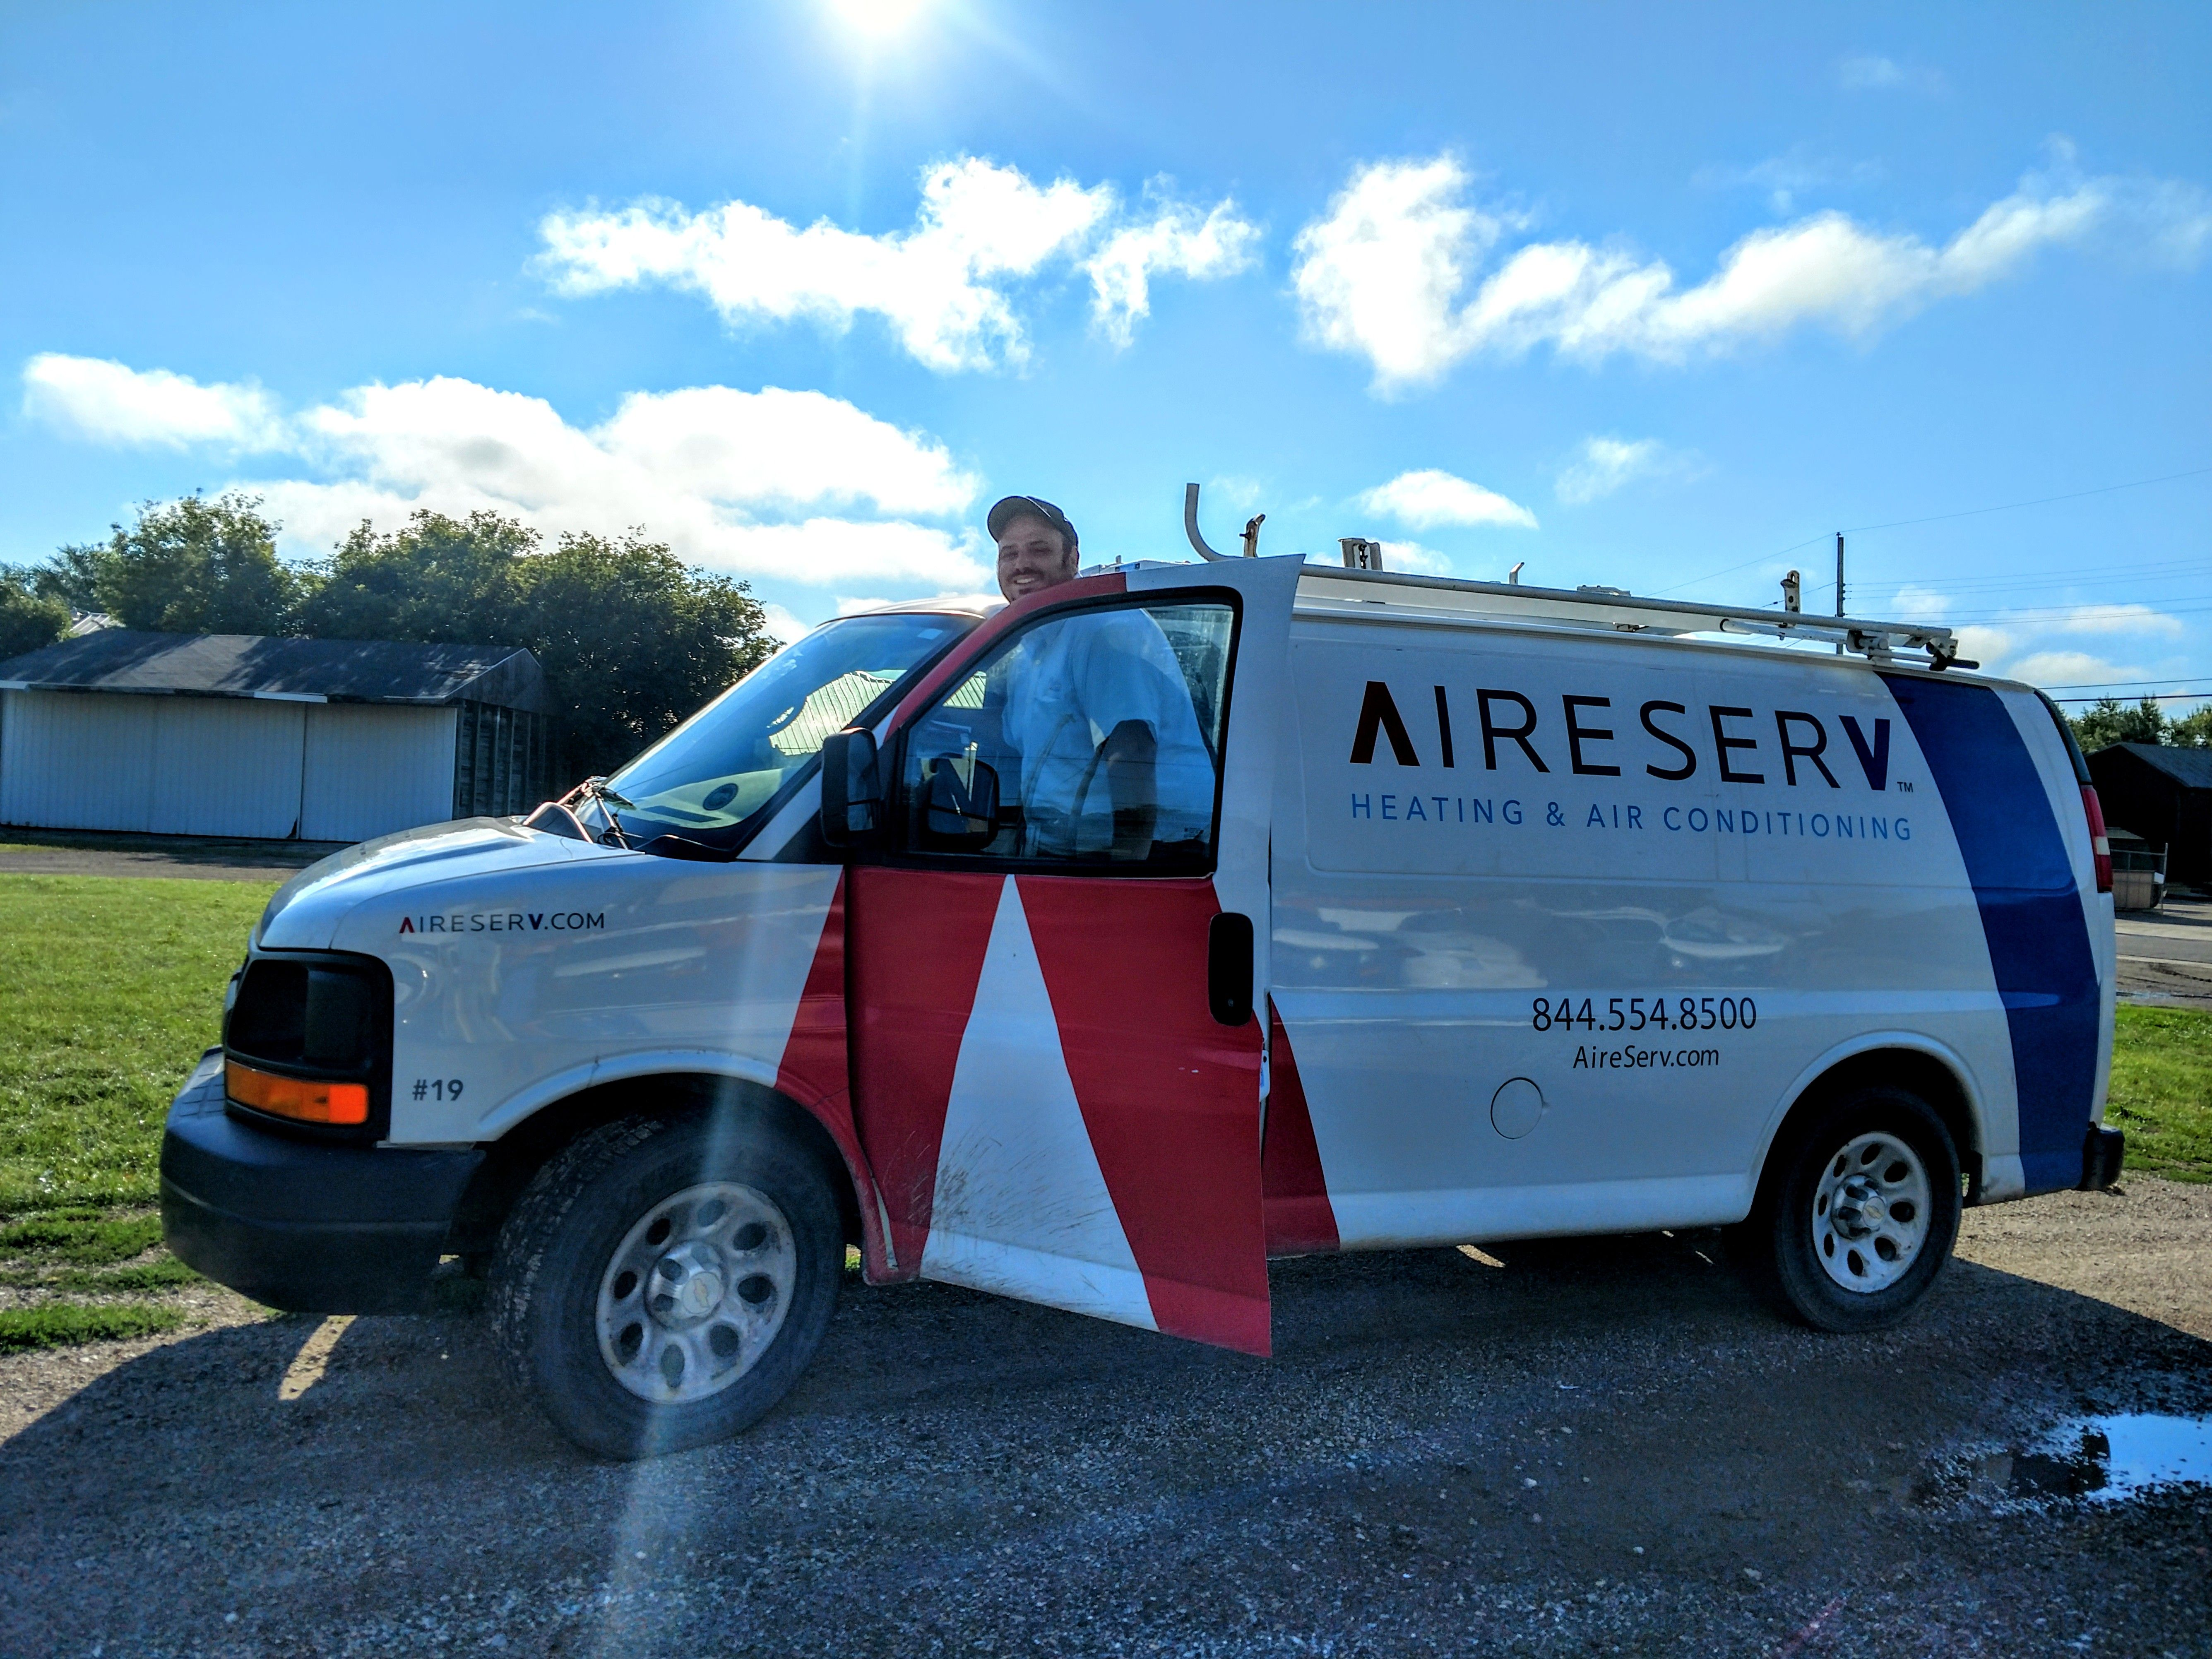 Meet Some Of The Aire Serv Team We Re Here To Help You Find Peace